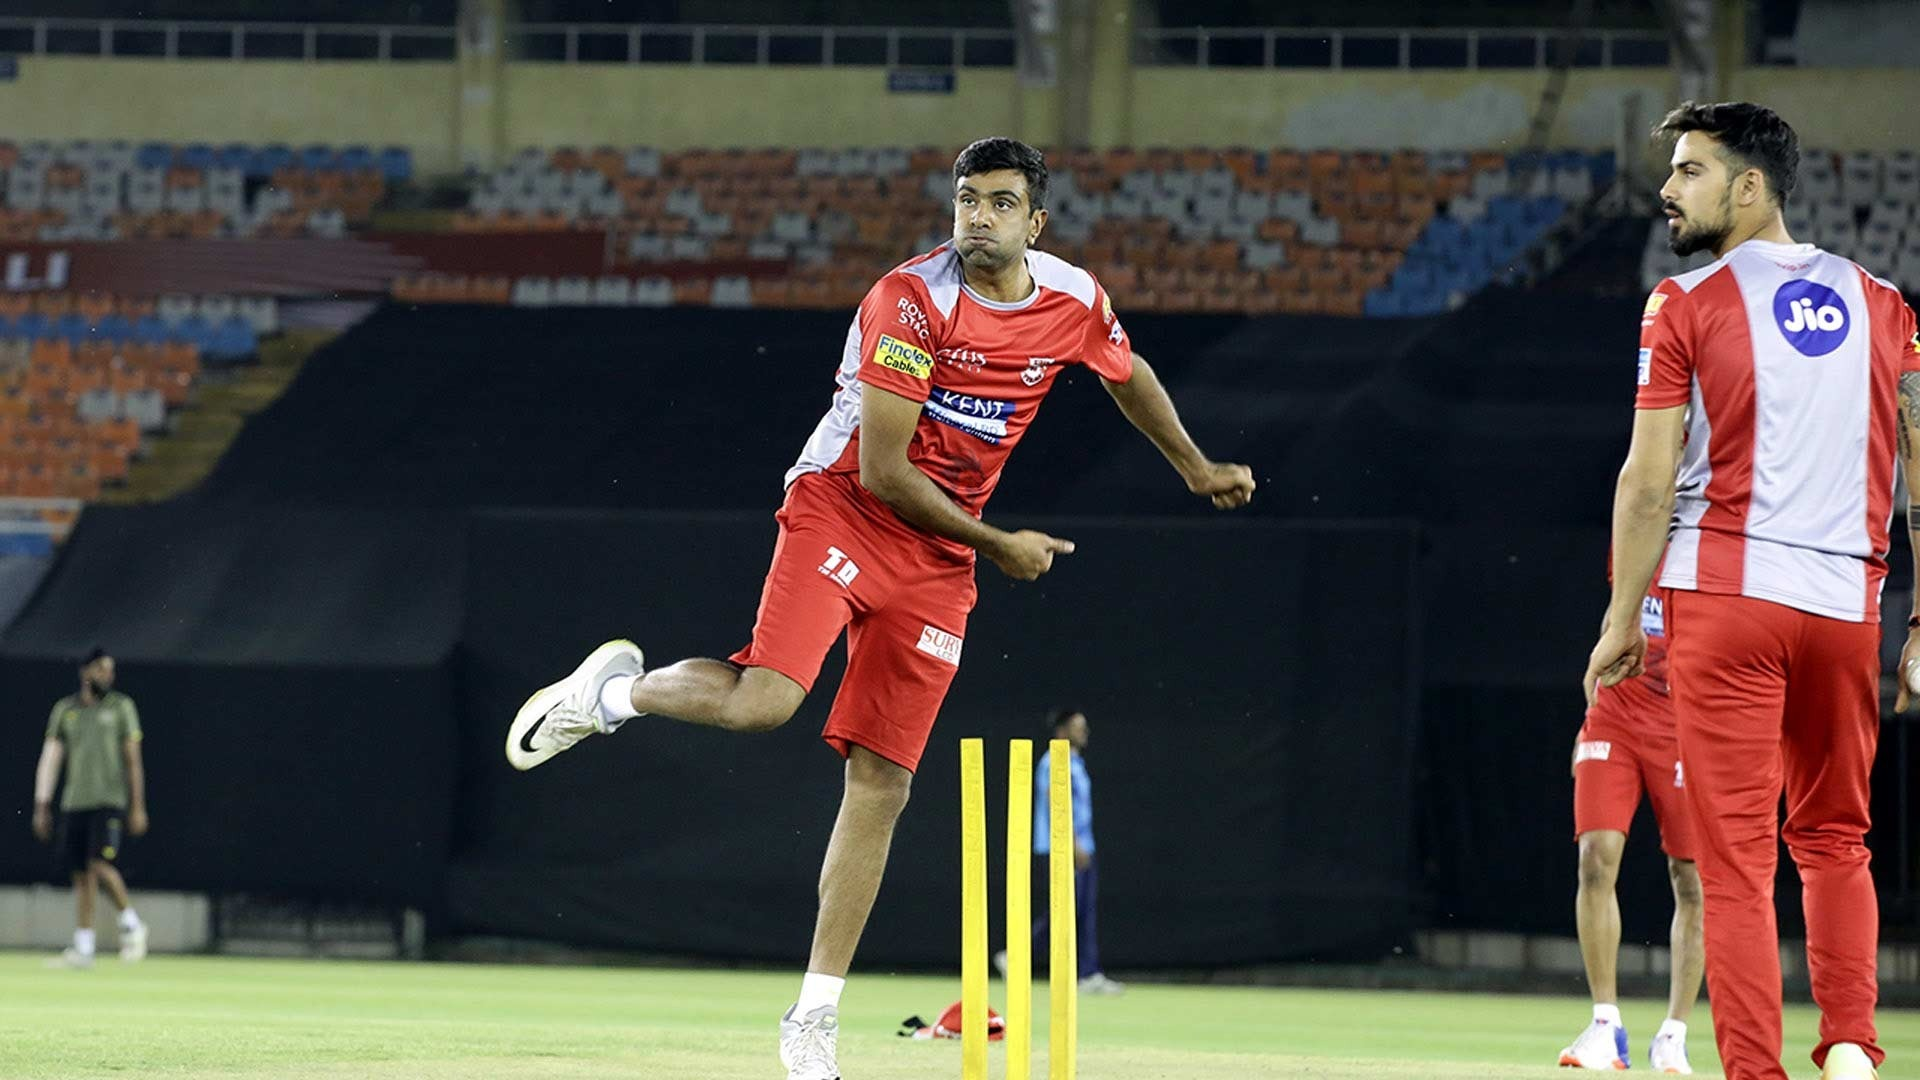 IPL 2018: Ravichandran Ashwin might implement his leg-spin tactic in Test cricket